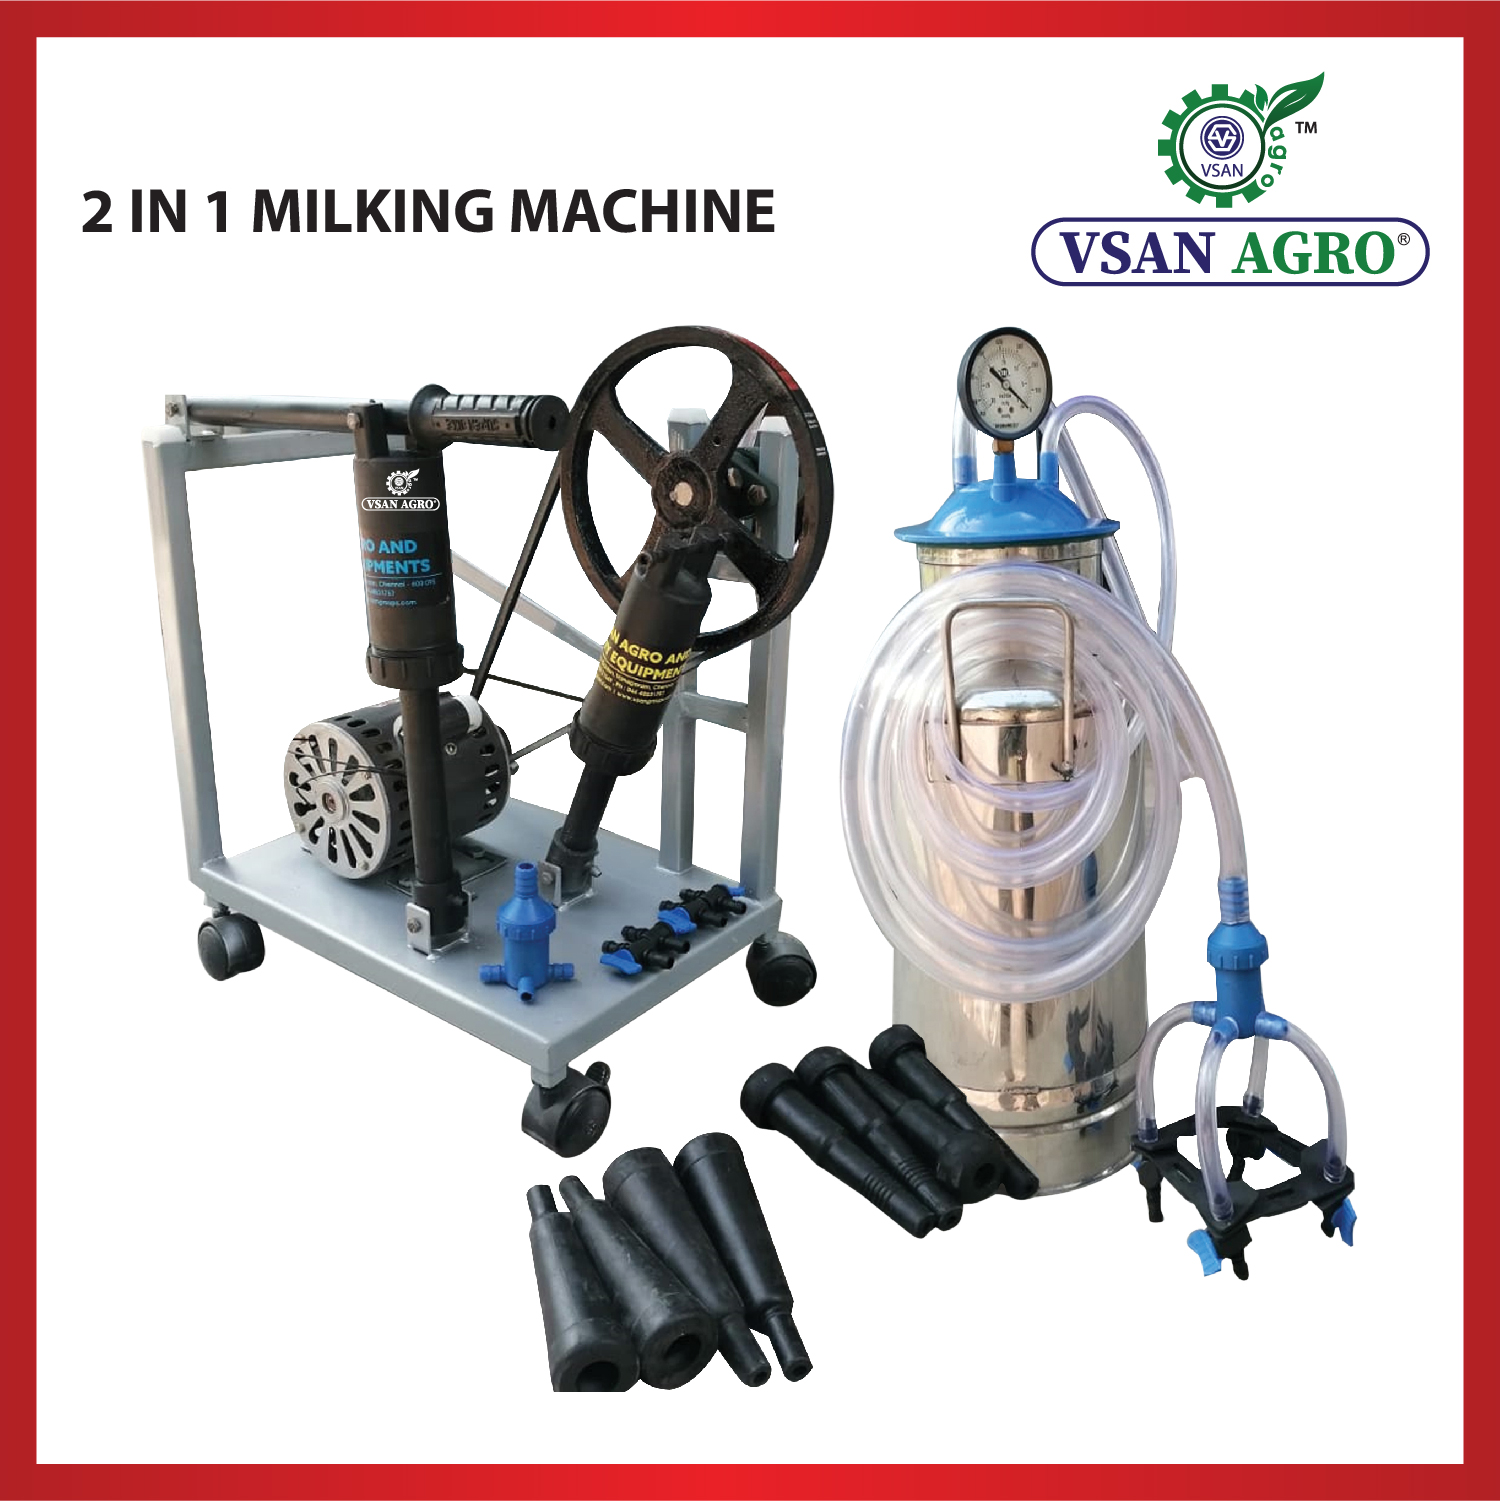 VSAN 2 in 1 Milking Machine